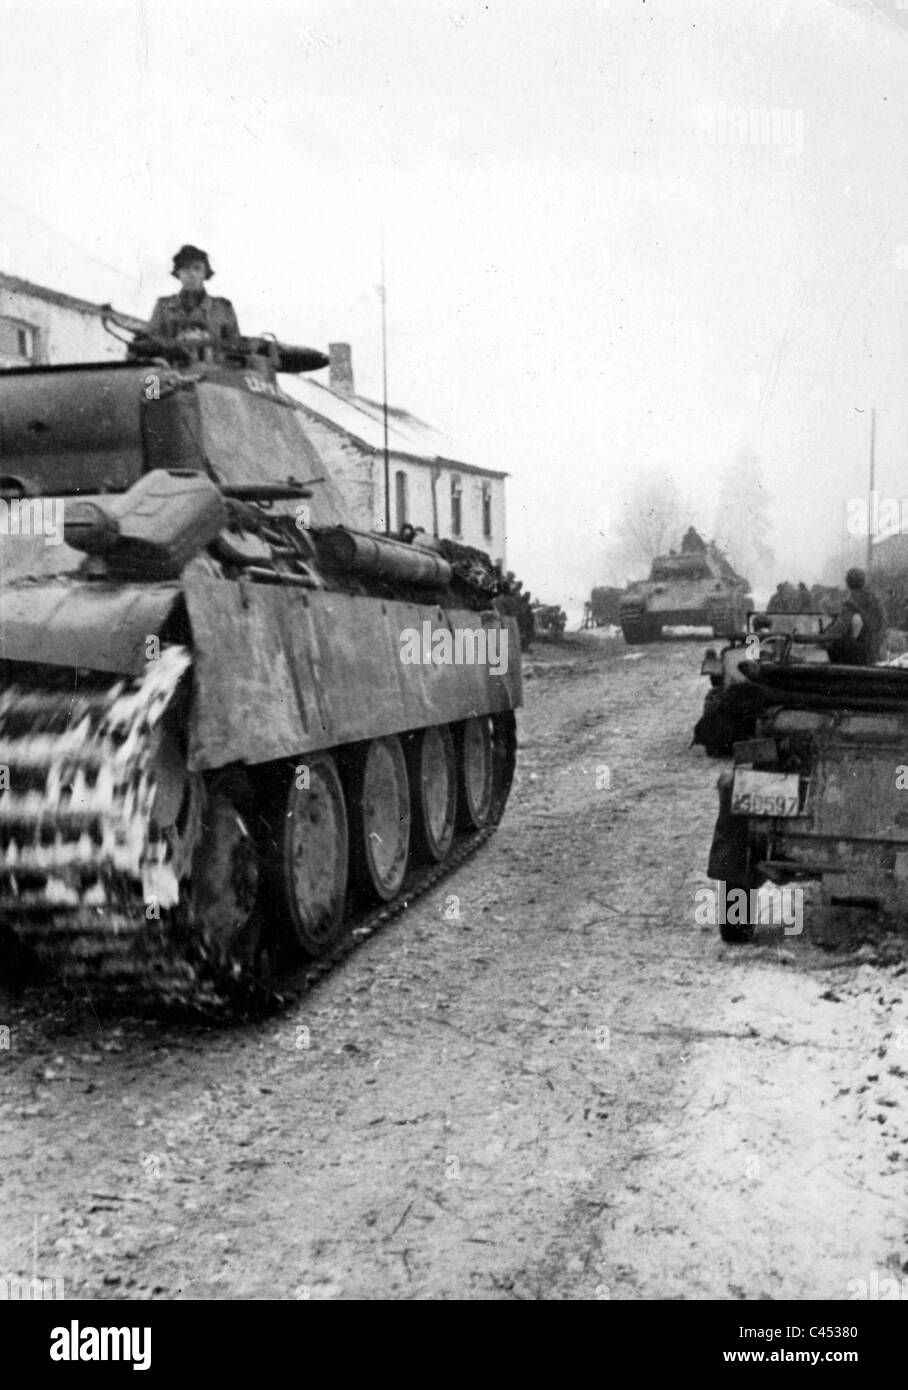 German panther tanks in the ardennes 1945 stock photo 36991696 alamy german panther tanks in the ardennes 1945 publicscrutiny Gallery